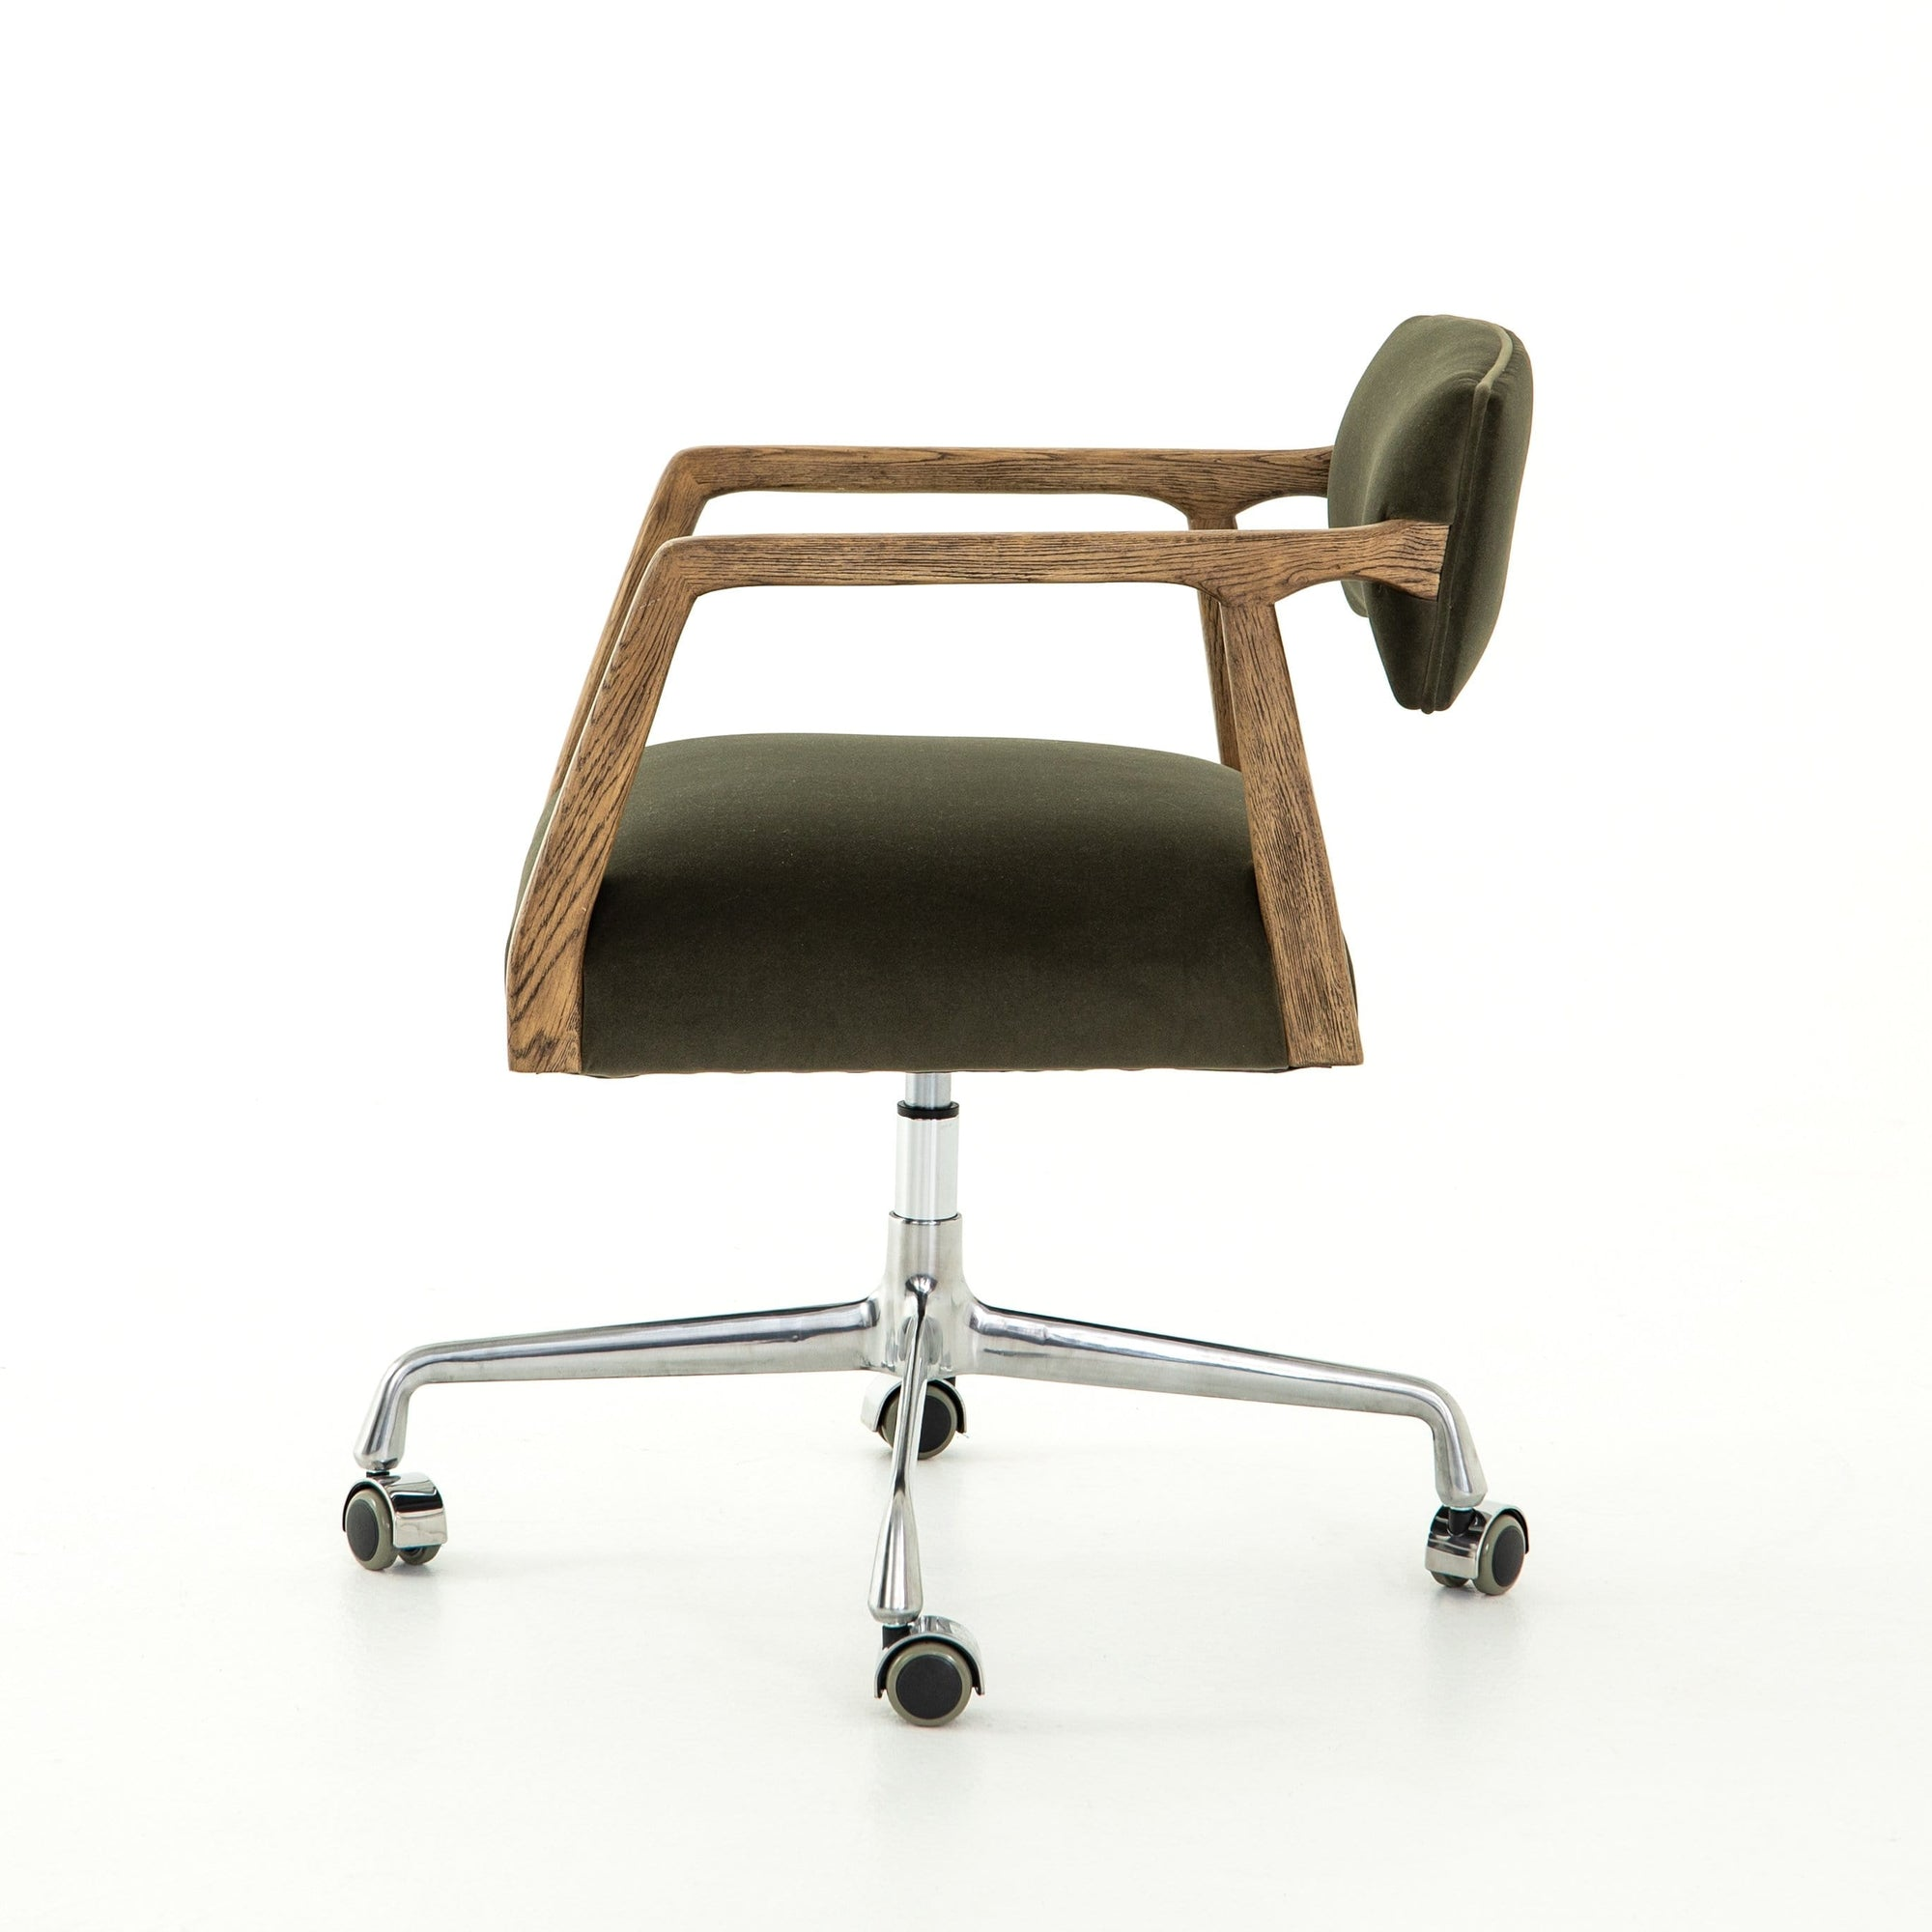 Four Hands Four Hands Tyler Desk Chair - Available in 4 Colors Modern Velvet Loden CABT-76-248